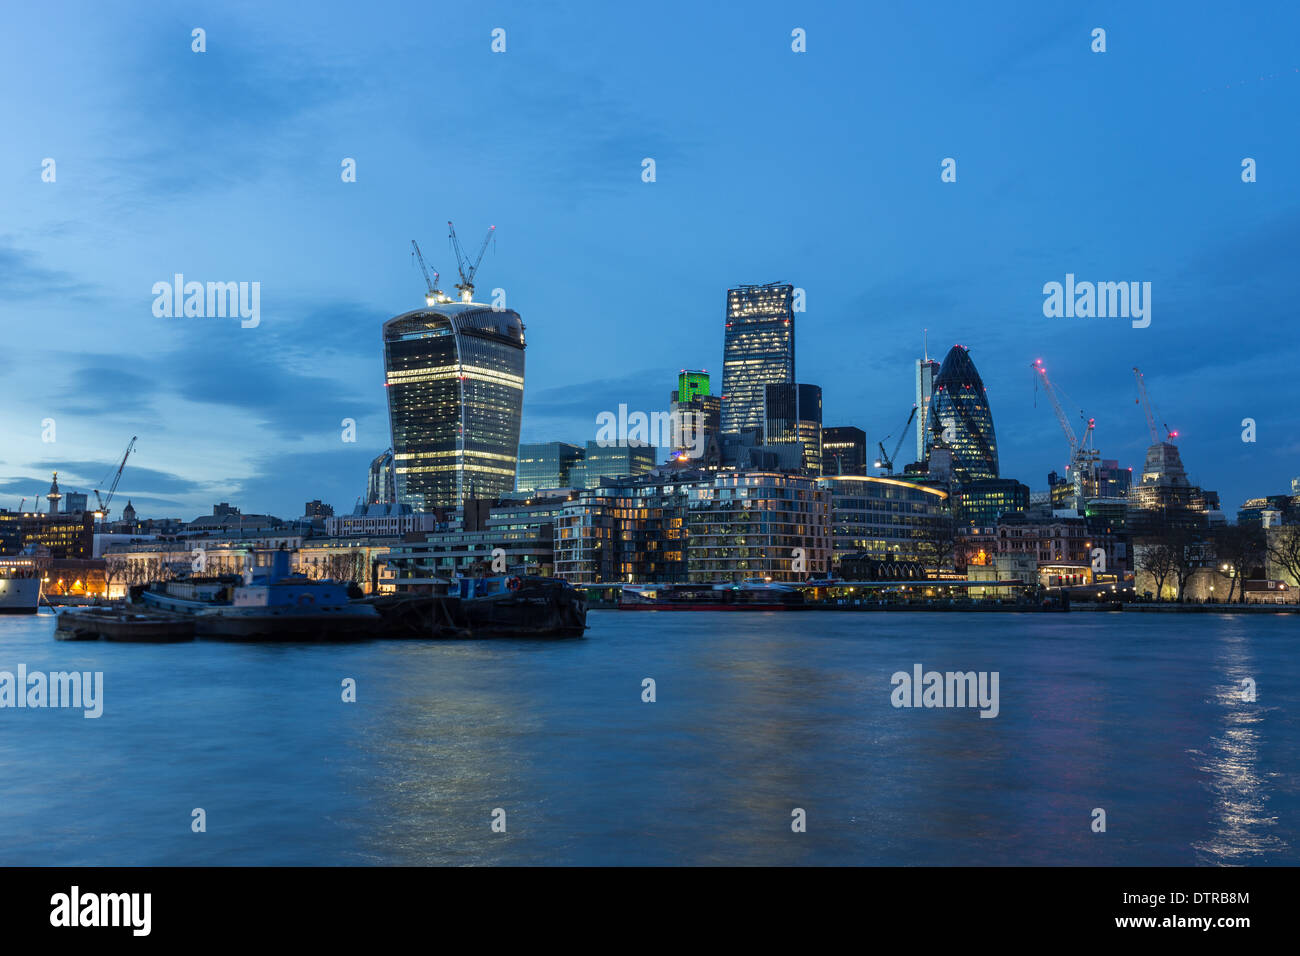 London buildings; 20 Fenchurch Street (left), 122 Leadenhall Street (middle) and 30 St Mary Axe (right). - Stock Image